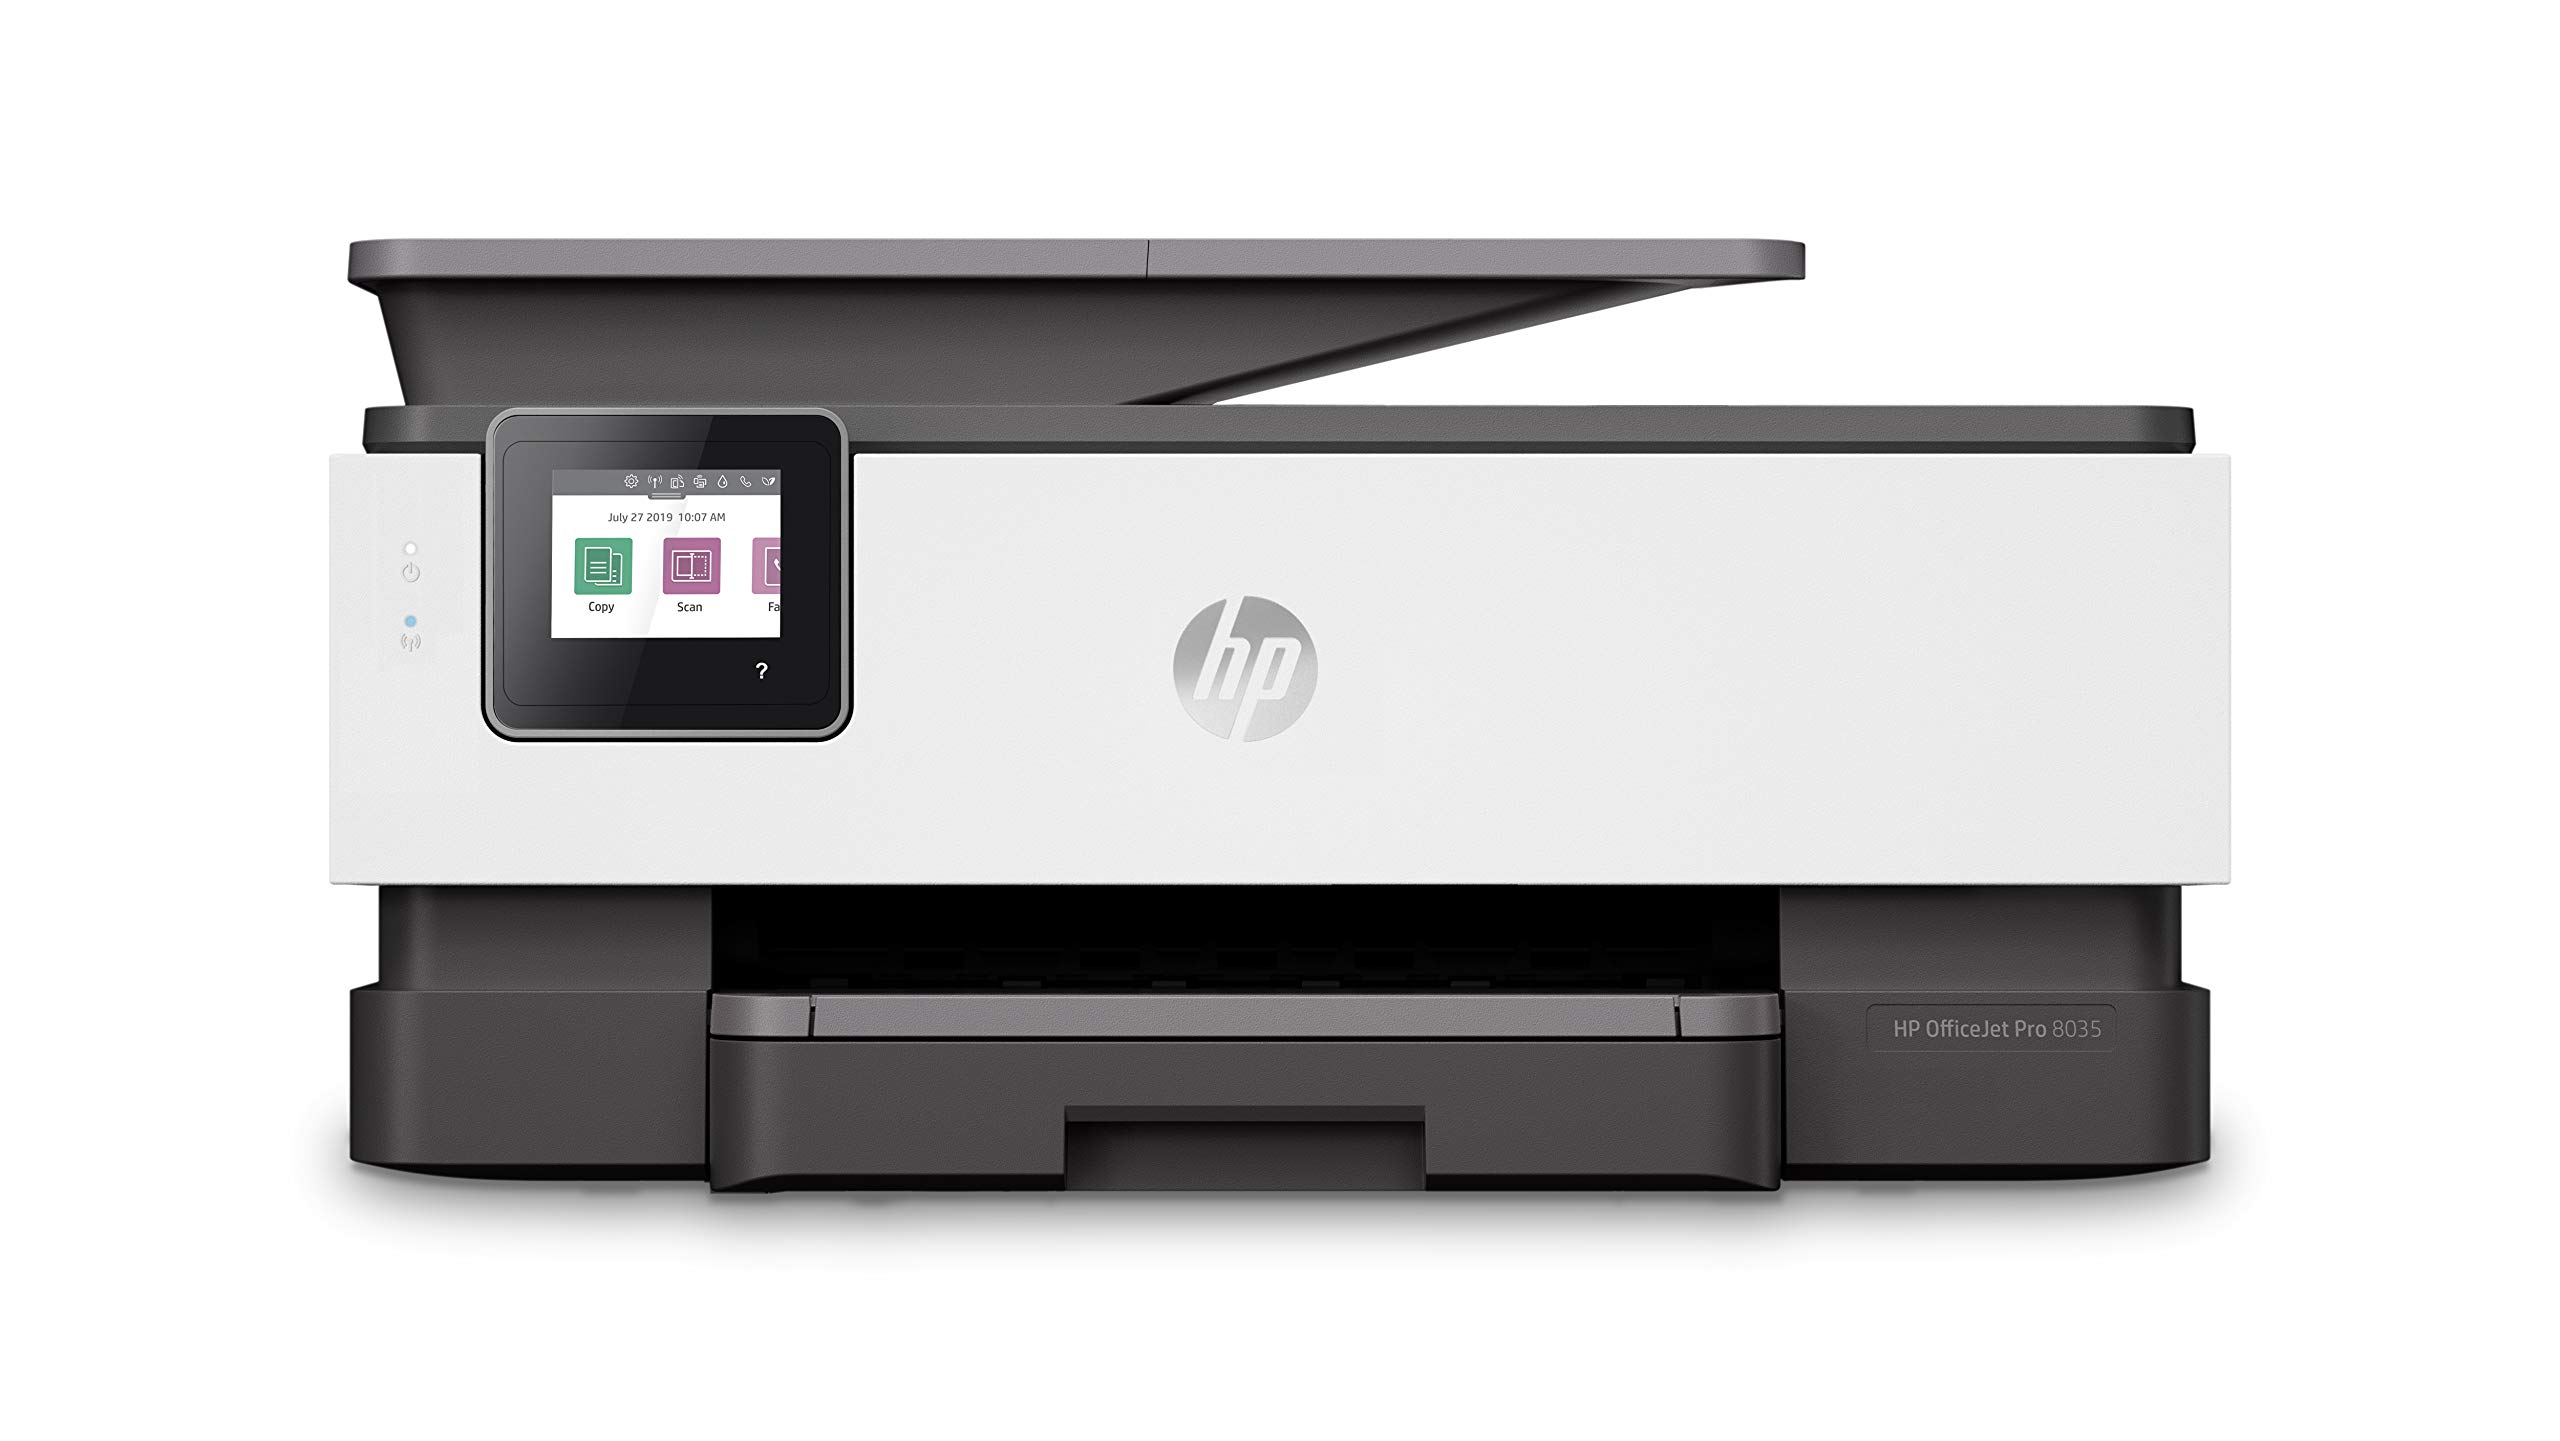 HP OfficeJet Pro 8035 All-in-One Wireless Printer - Includes 8 Months of Ink Delivered to Your Door, Smart Home Office Productivity - Basalt (5LJ23A) by HP